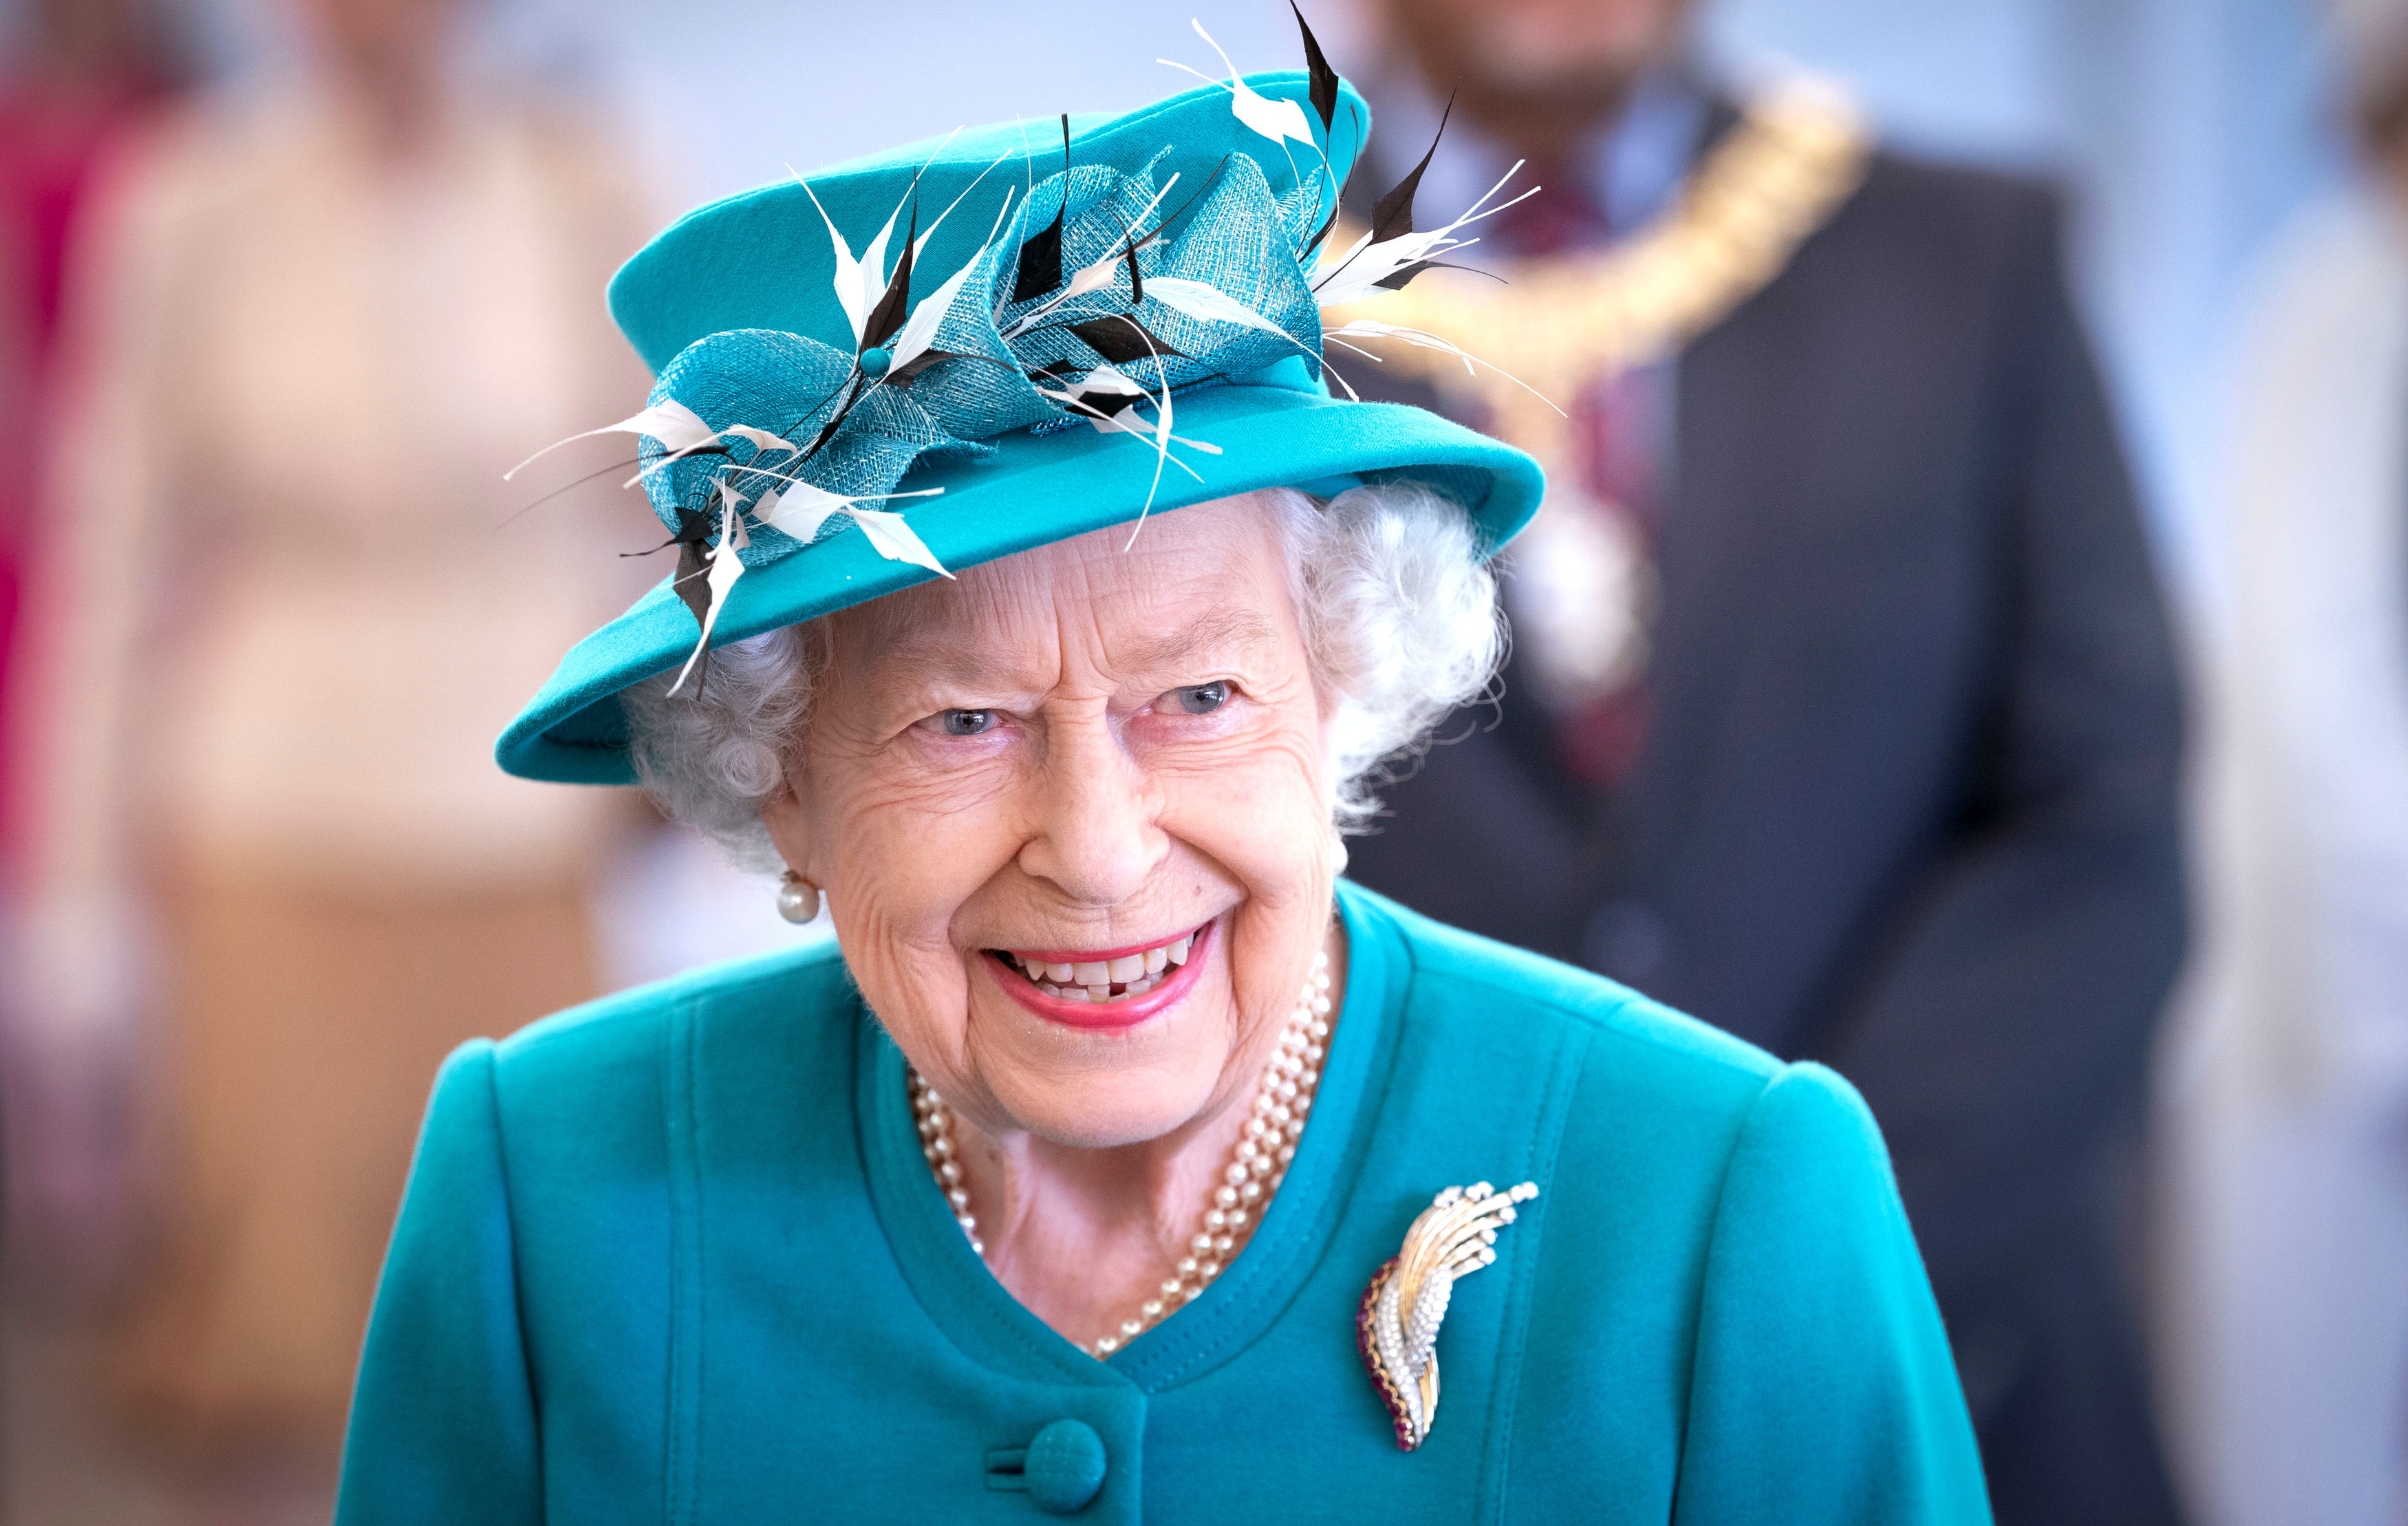 Britain's Queen Elizabeth visits the Edinburgh Climate Change Institute at the University of Edinburgh, as part of her traditional trip to Scotland for Holyrood Week, in Edinburgh, Scotland, Britain July 1, 2021. Jane Barlow/Pool via REUTERS